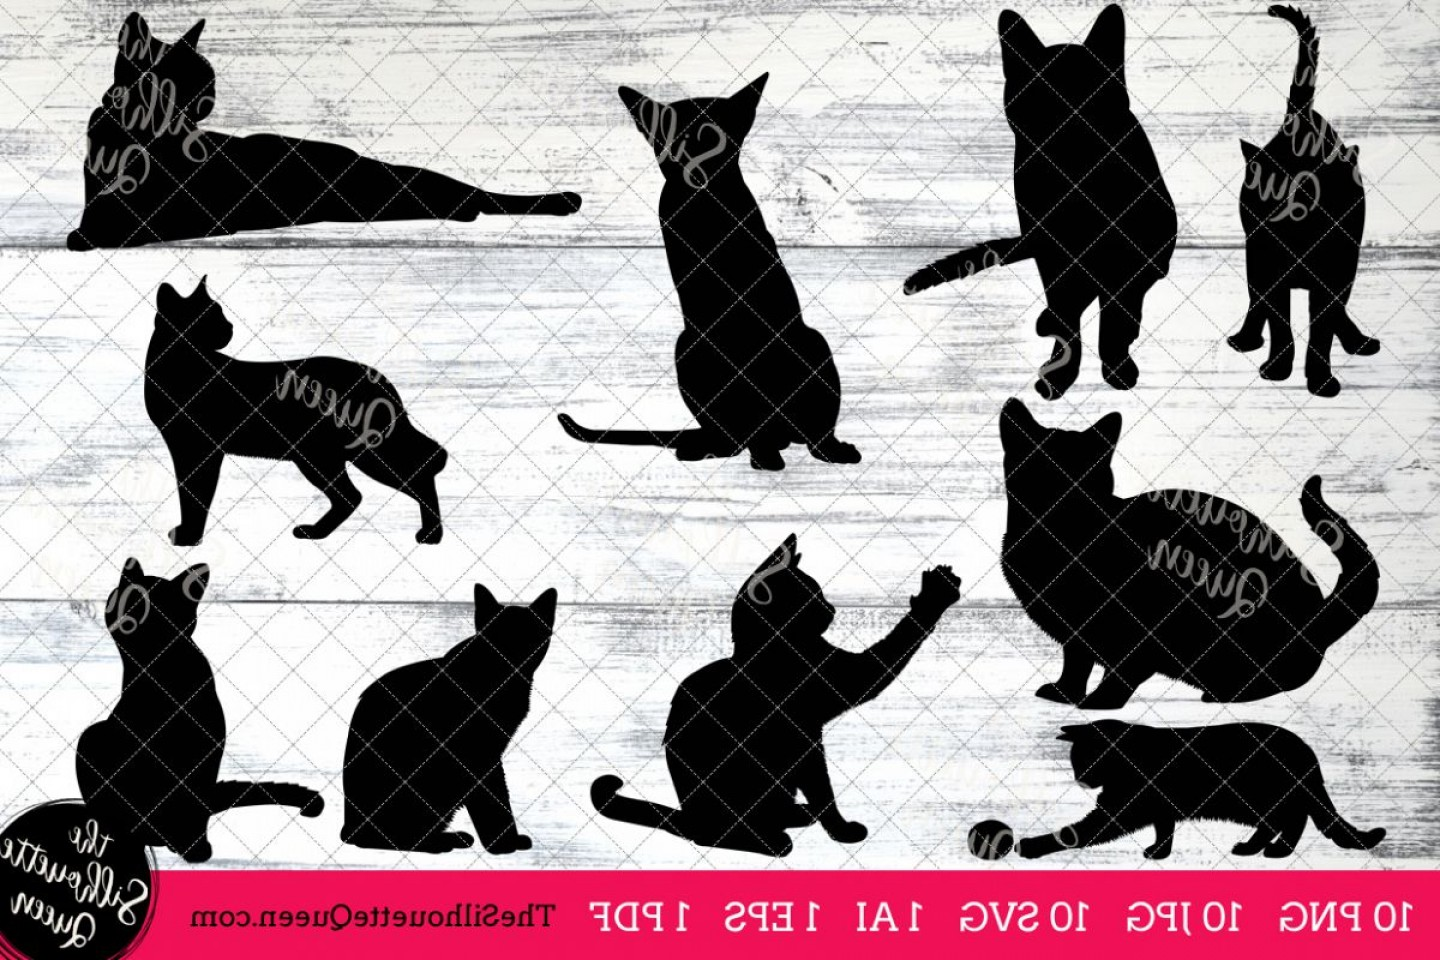 Siamese Cat Vector Transparent Background: Siamese Cat Silhouette Clipart Clip Art Ai Eps Svgs Jpgs Pngs Pdf Siamese Cat Clip Art Clipart Vectors Commercial And Personal Use